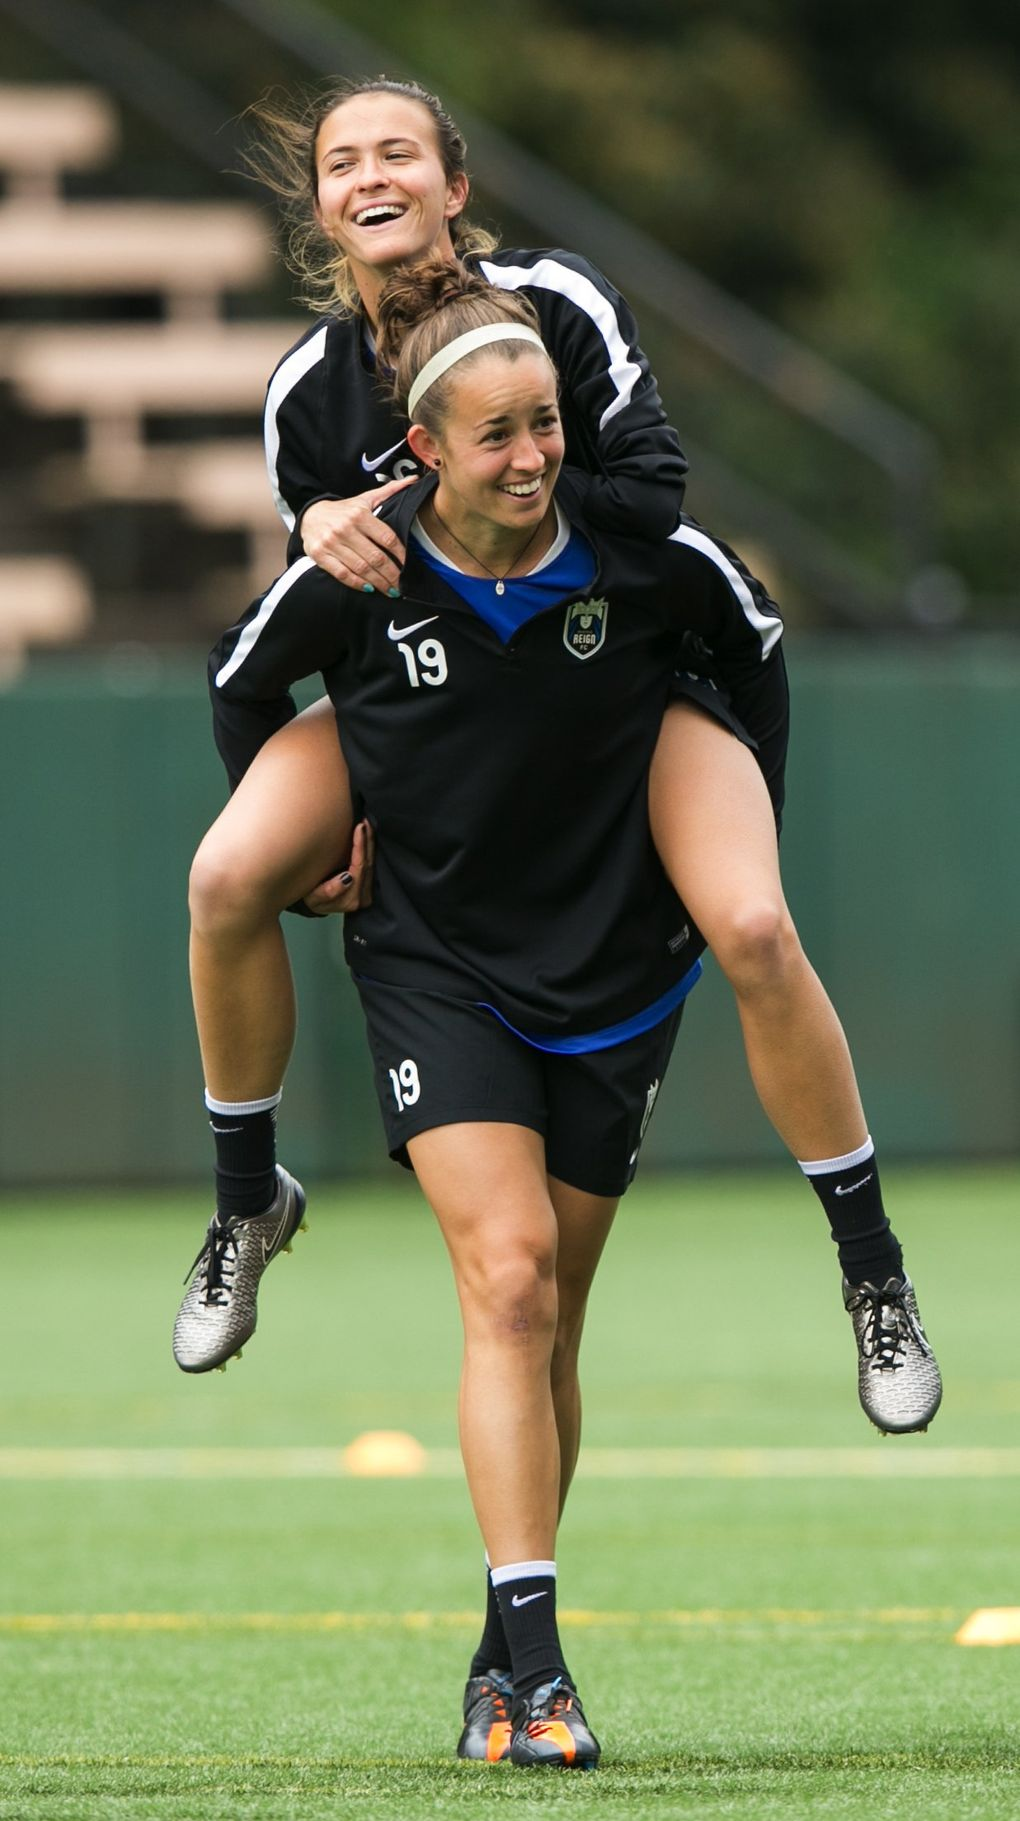 Seattle Reign defender Carson Pickett piggybacks on midfielder Havana Solaun during a fun drill at practice April 11, 2016. Pickett and Solaun are good friends — the two met while playing tennis as kids in Florida. (Bettina Hansen/The Seattle Times)